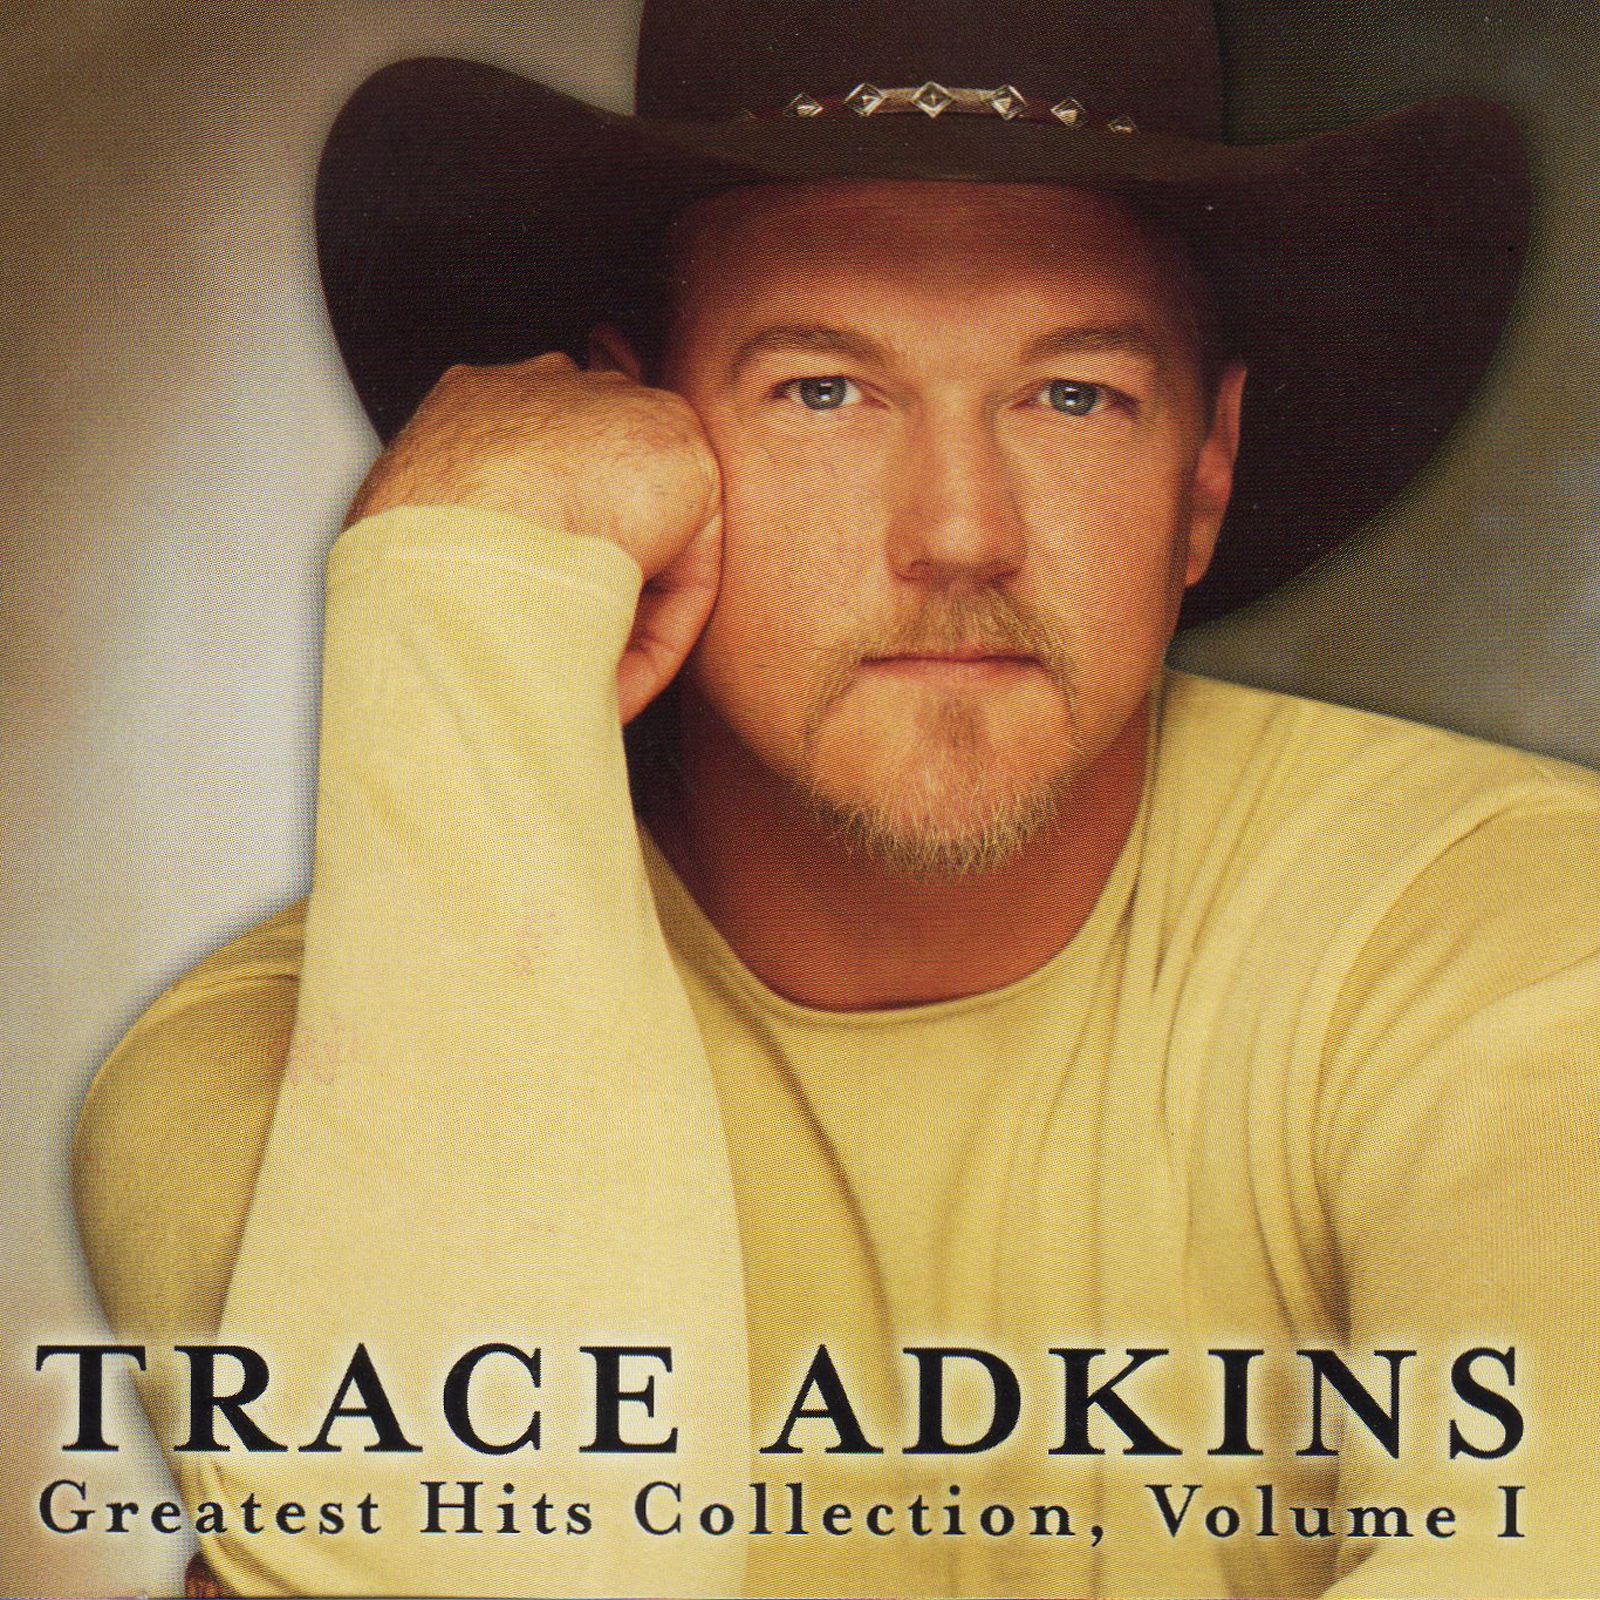 Trace adkins greatest hits collection volume 1 cd star for Top 50 house songs of all time